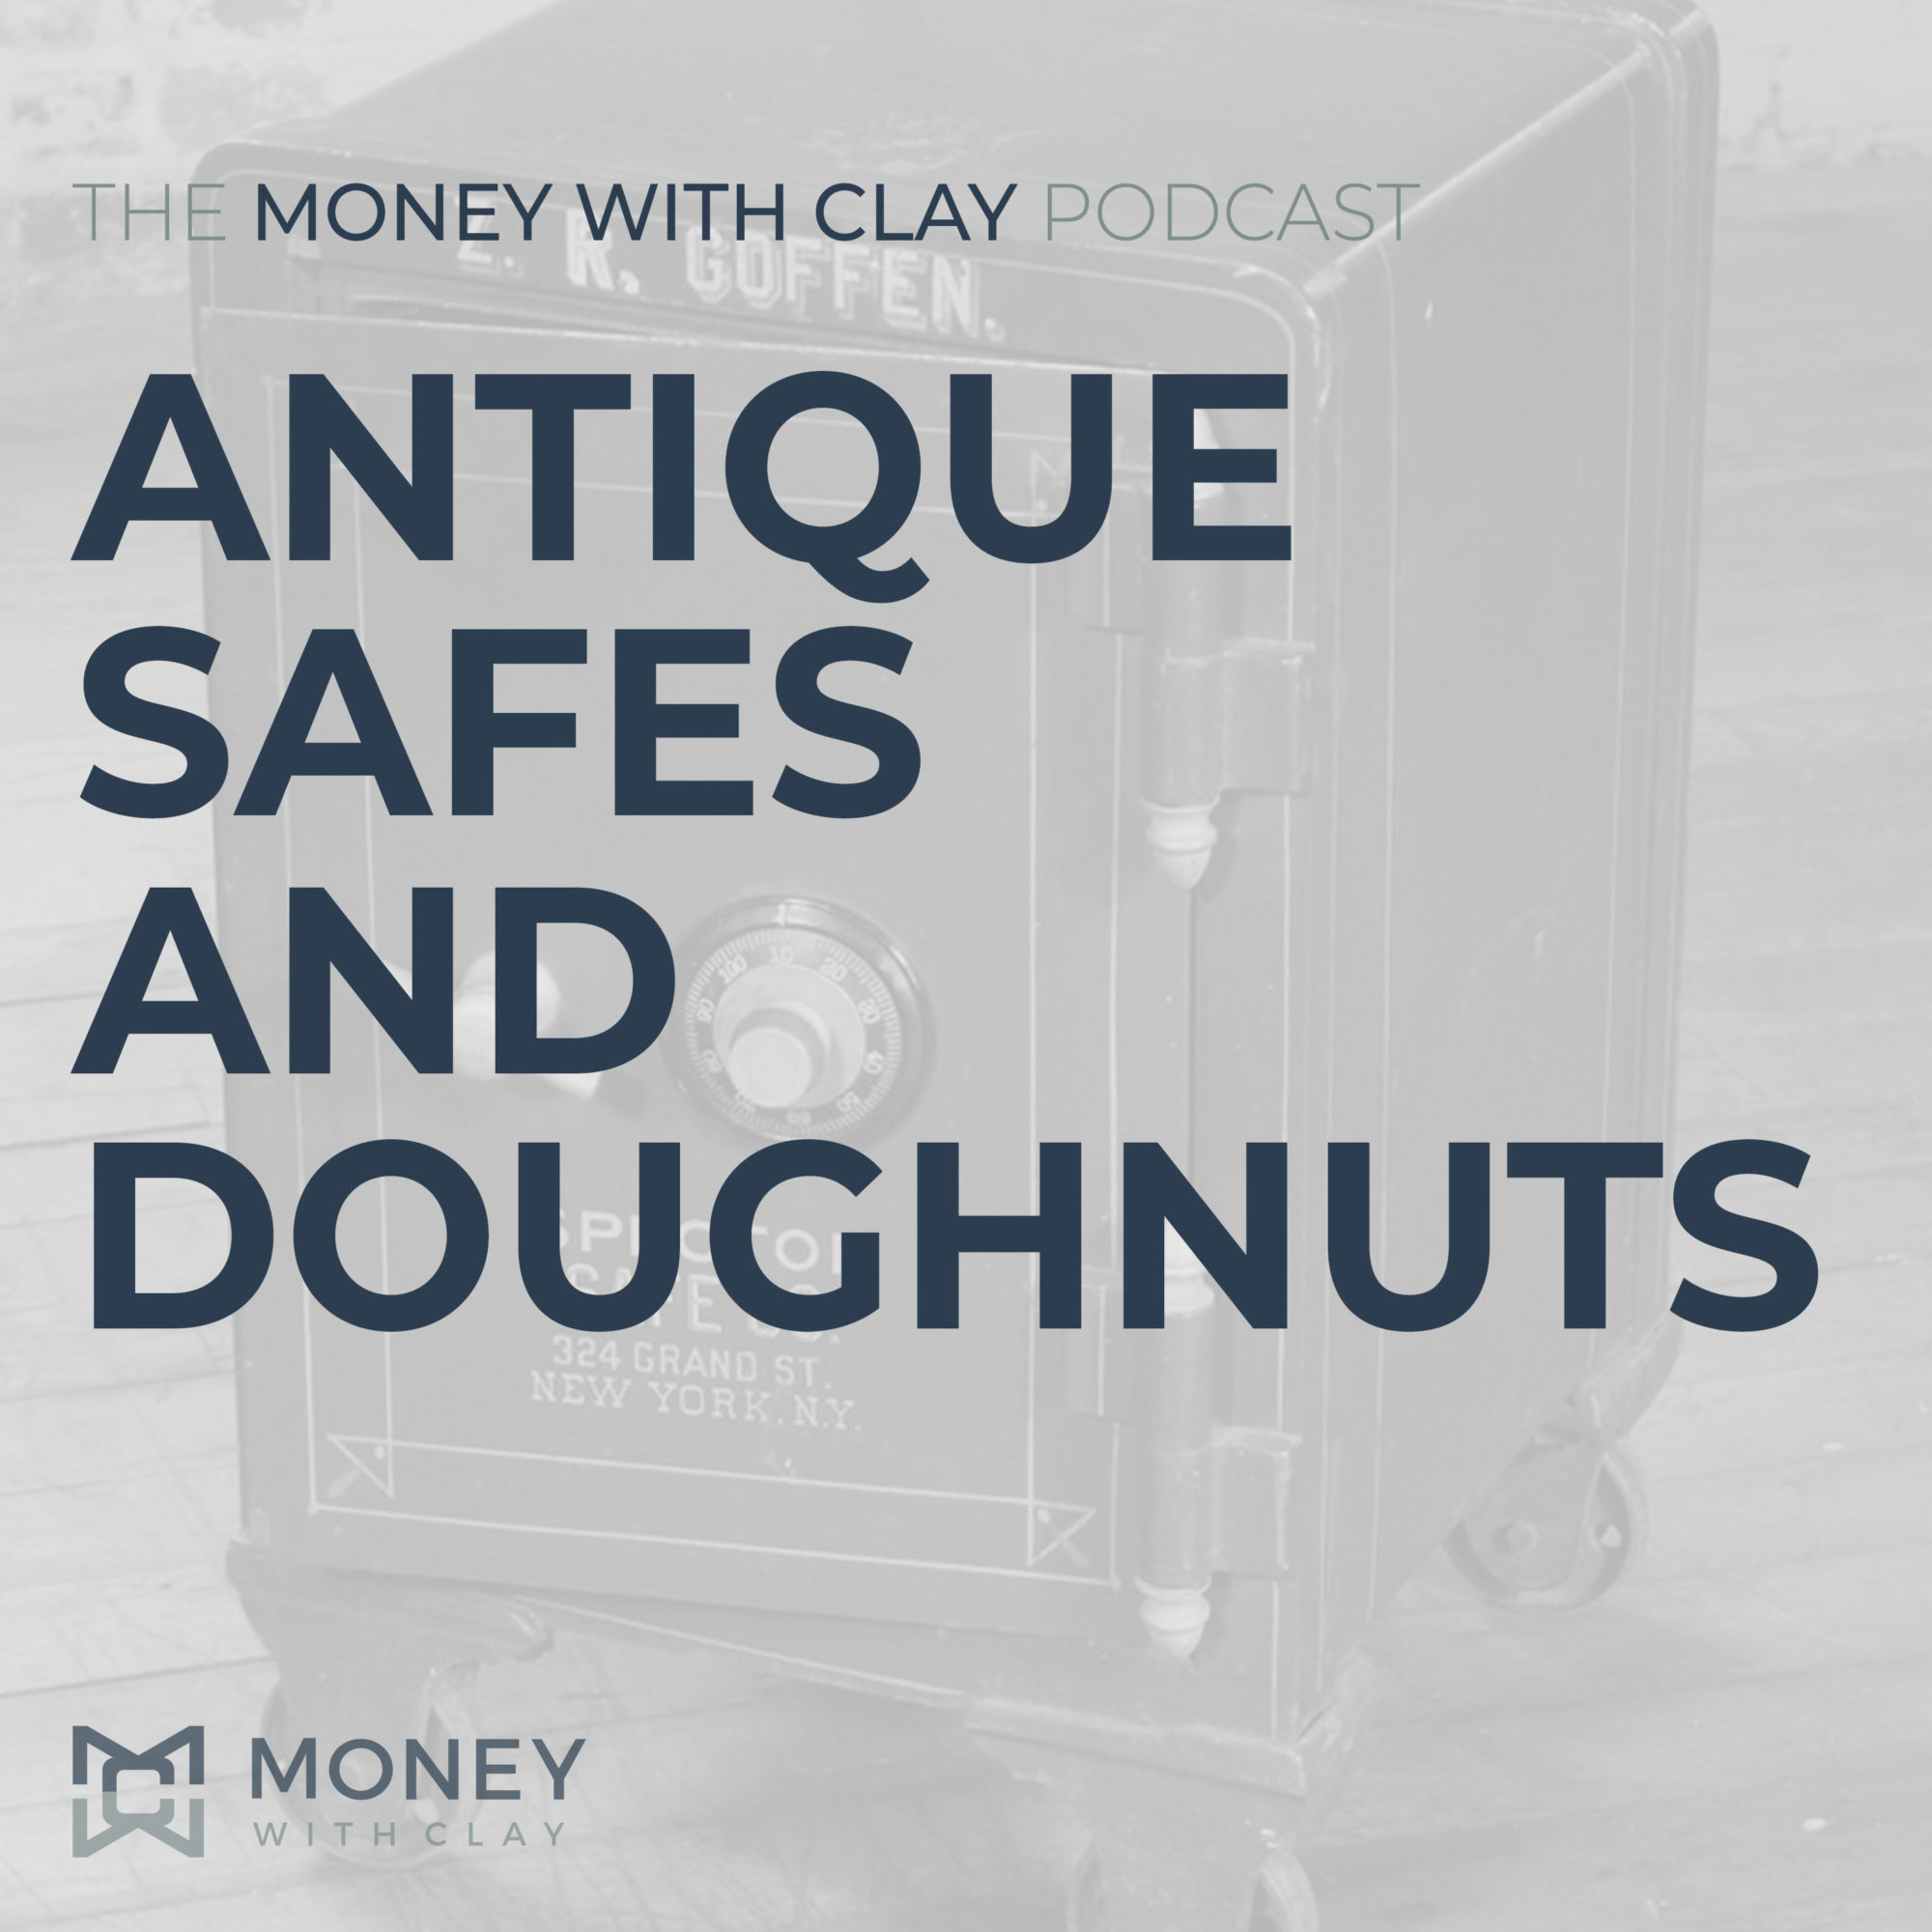 #045 - Antique Safes and Doughnuts